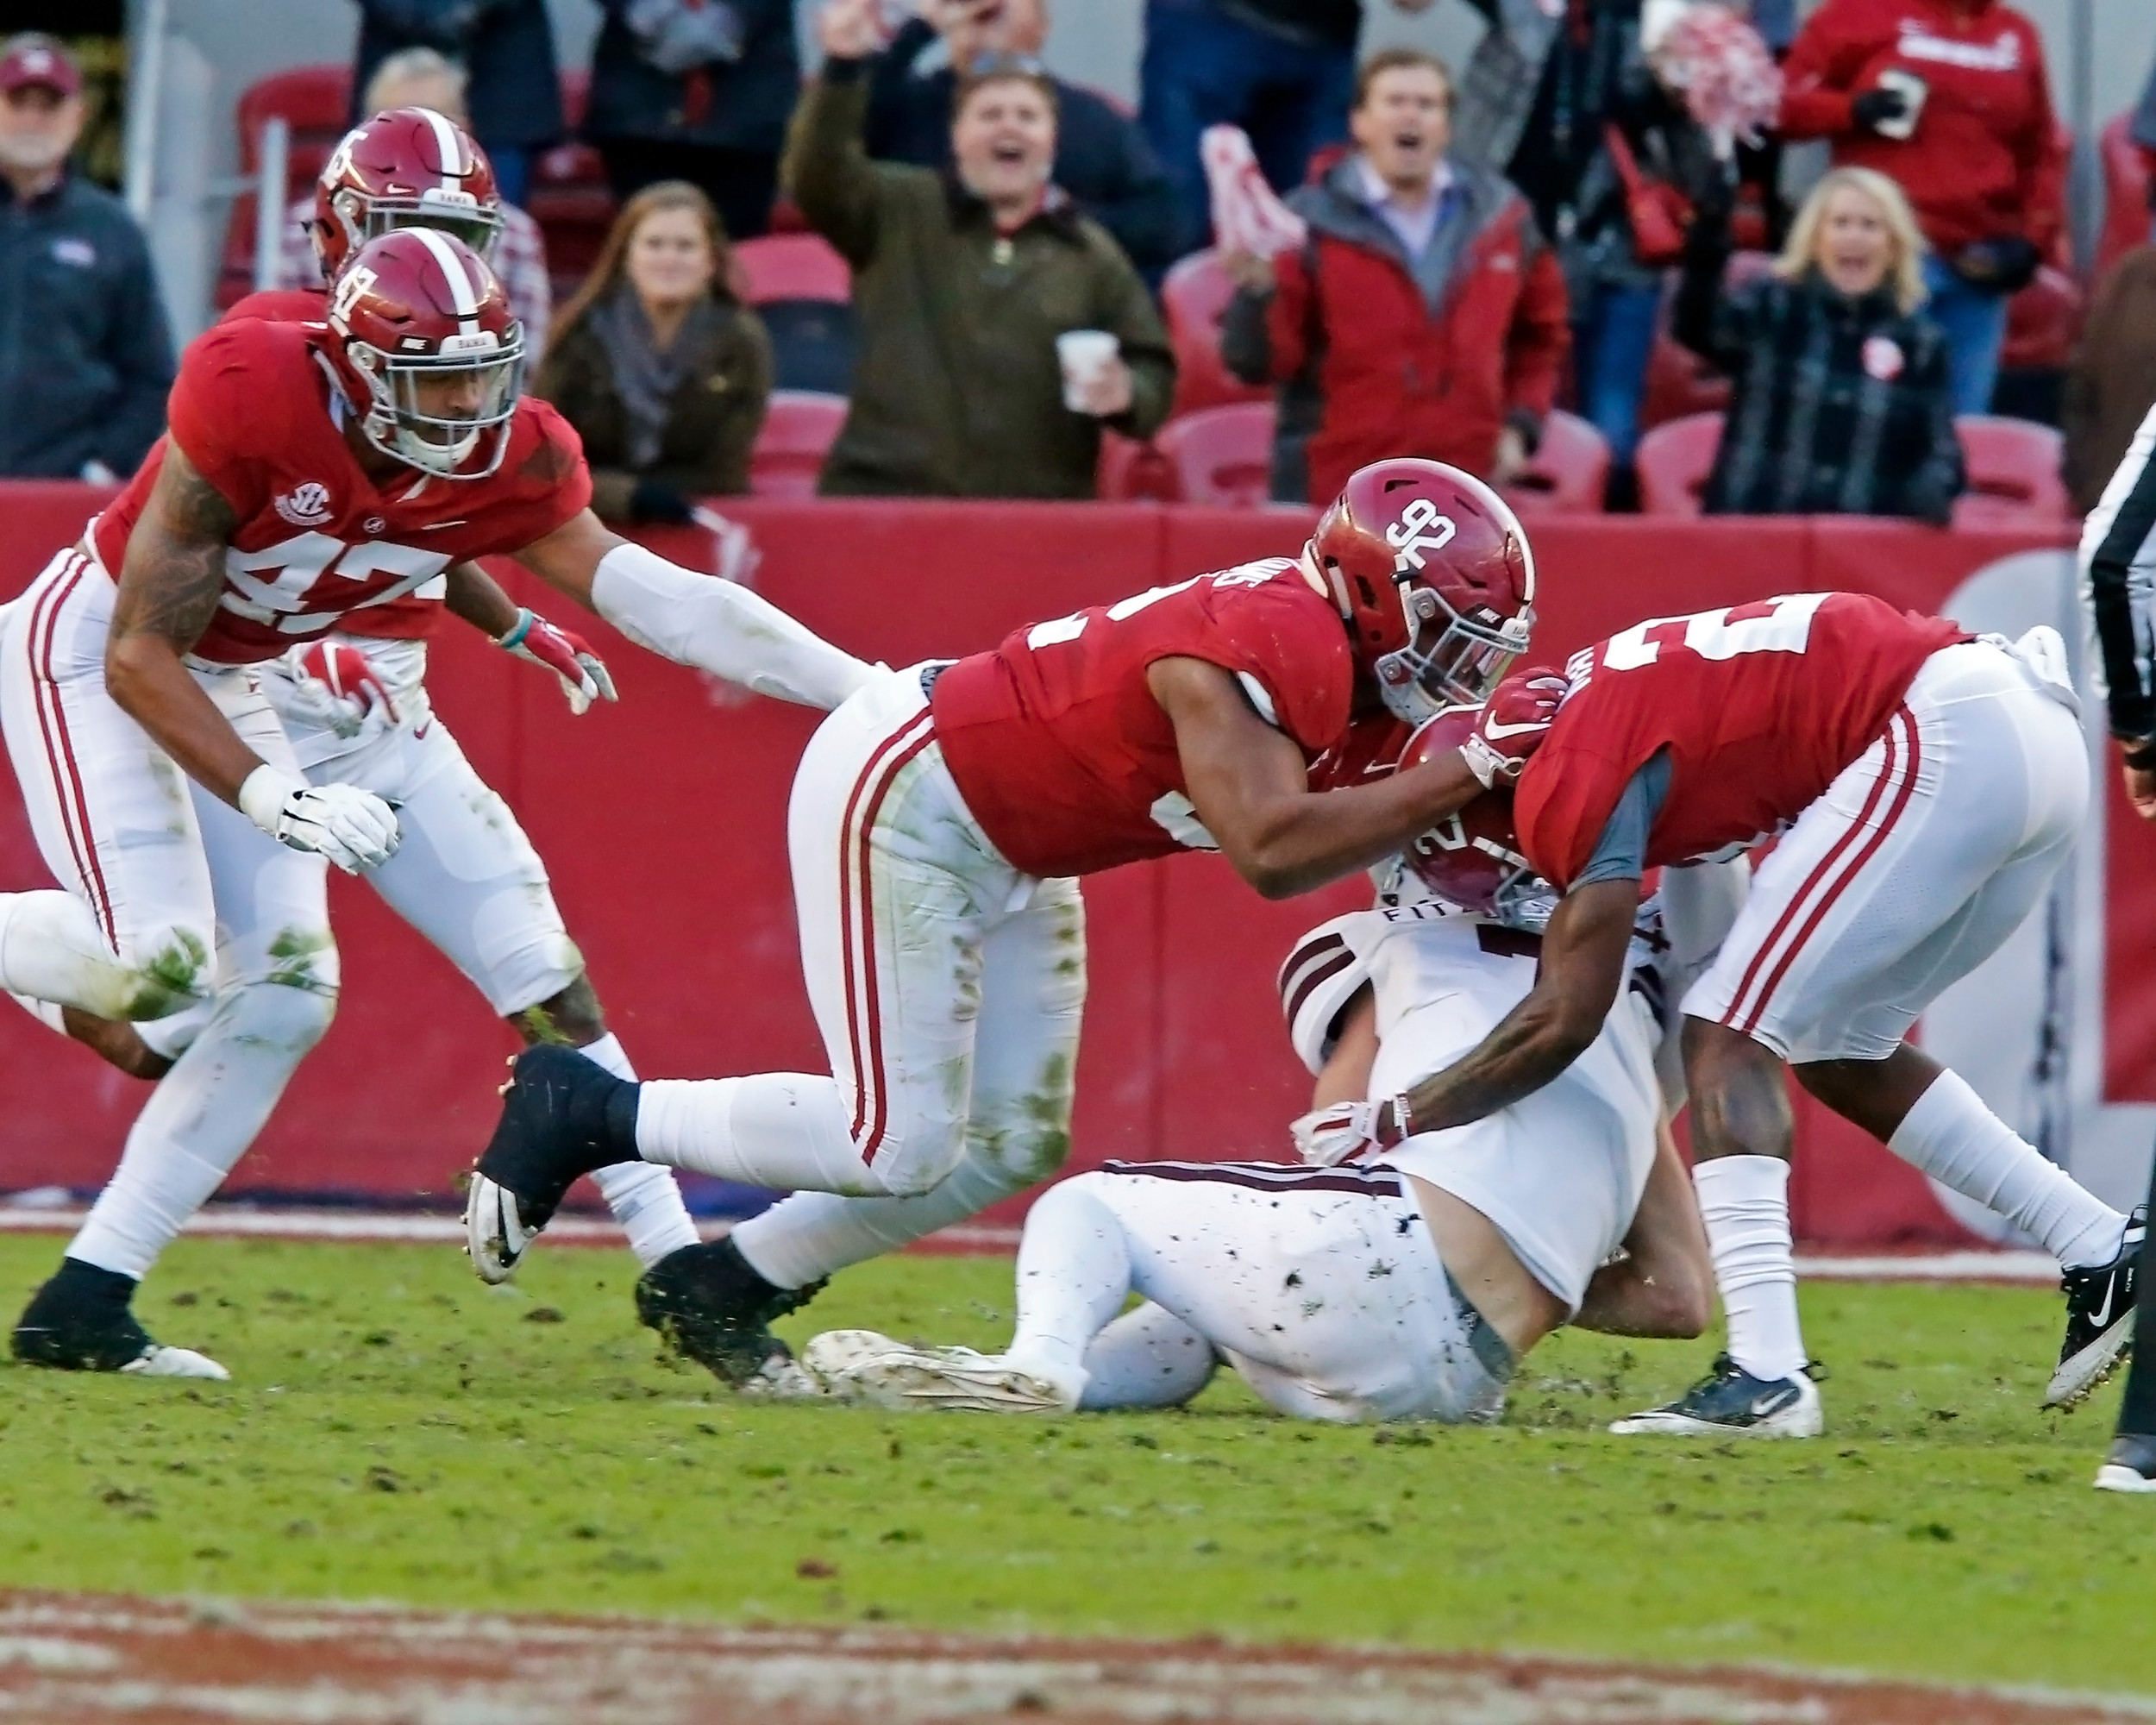 Alabama Crimson Tide defensive lineman Quinnen Williams (92) helps finish off a tackle on Mississippi State Bulldogs quarterback Nick Fitzgerald (7) during the game between Mississippi State and the University of Alabama at Bryant-Denny Stadium in Tuscaloosa, Al. Credit: Jason Clark / Daily Mountain Eagle